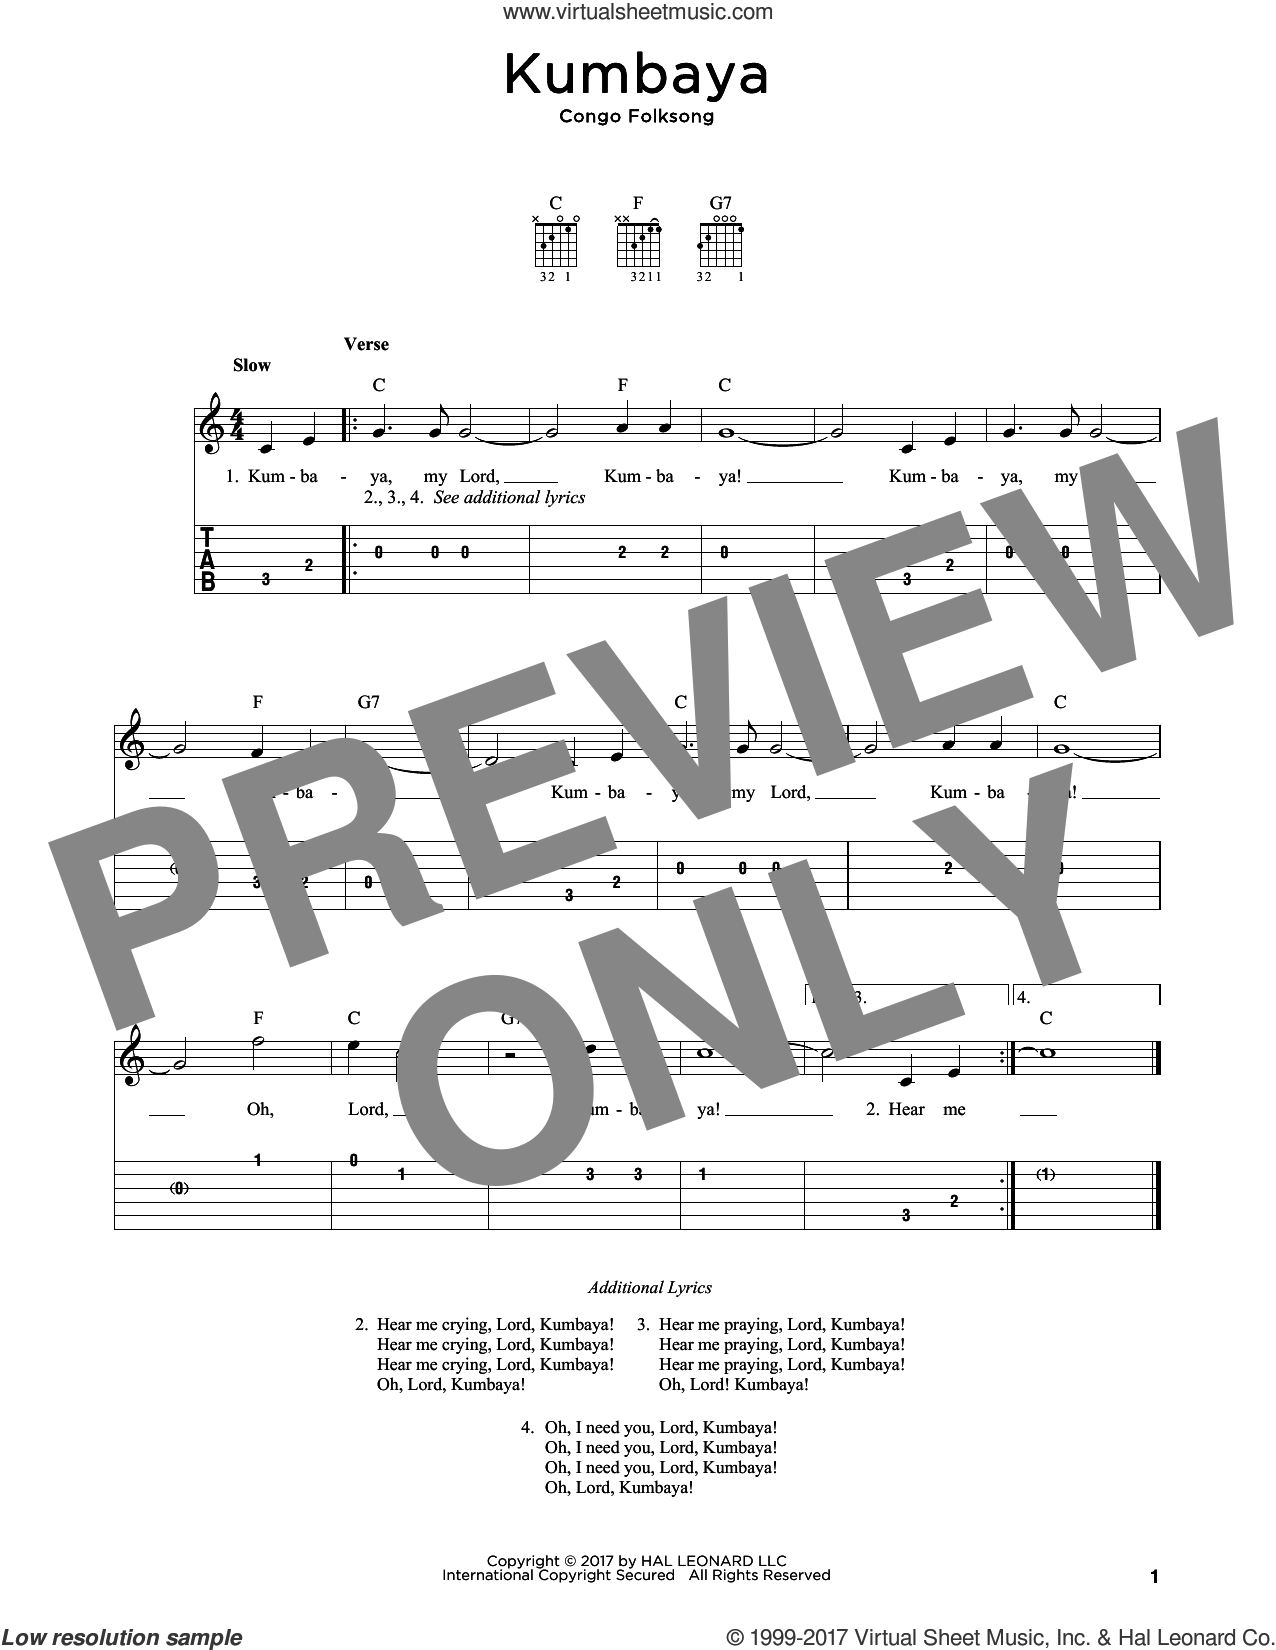 Kumbaya sheet music for guitar solo by Congo Folksong, intermediate skill level